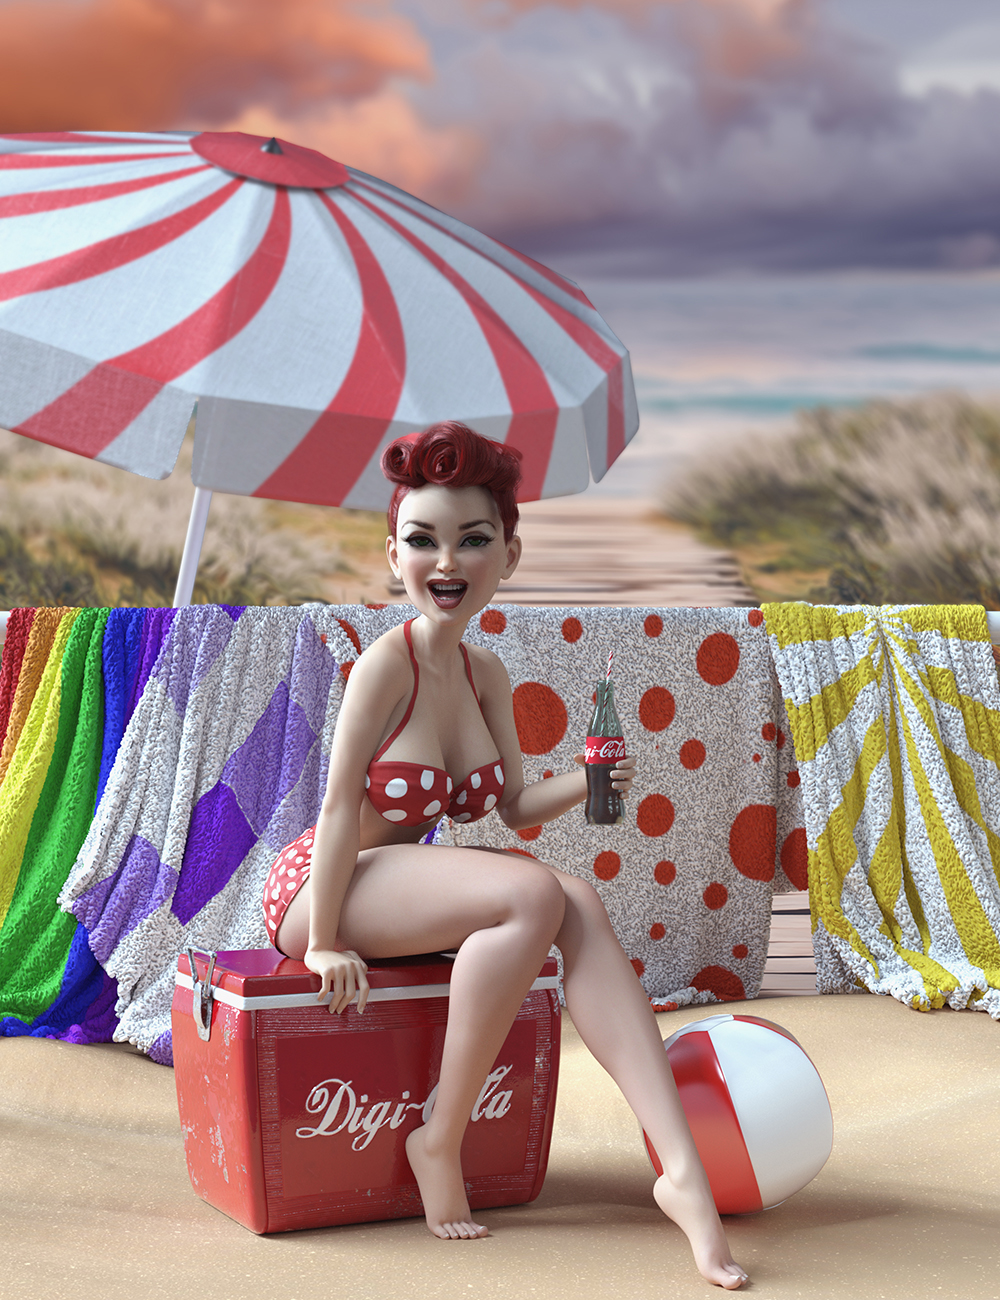 Summer Vibes Vintage Props with dForce by: Skyewolf, 3D Models by Daz 3D